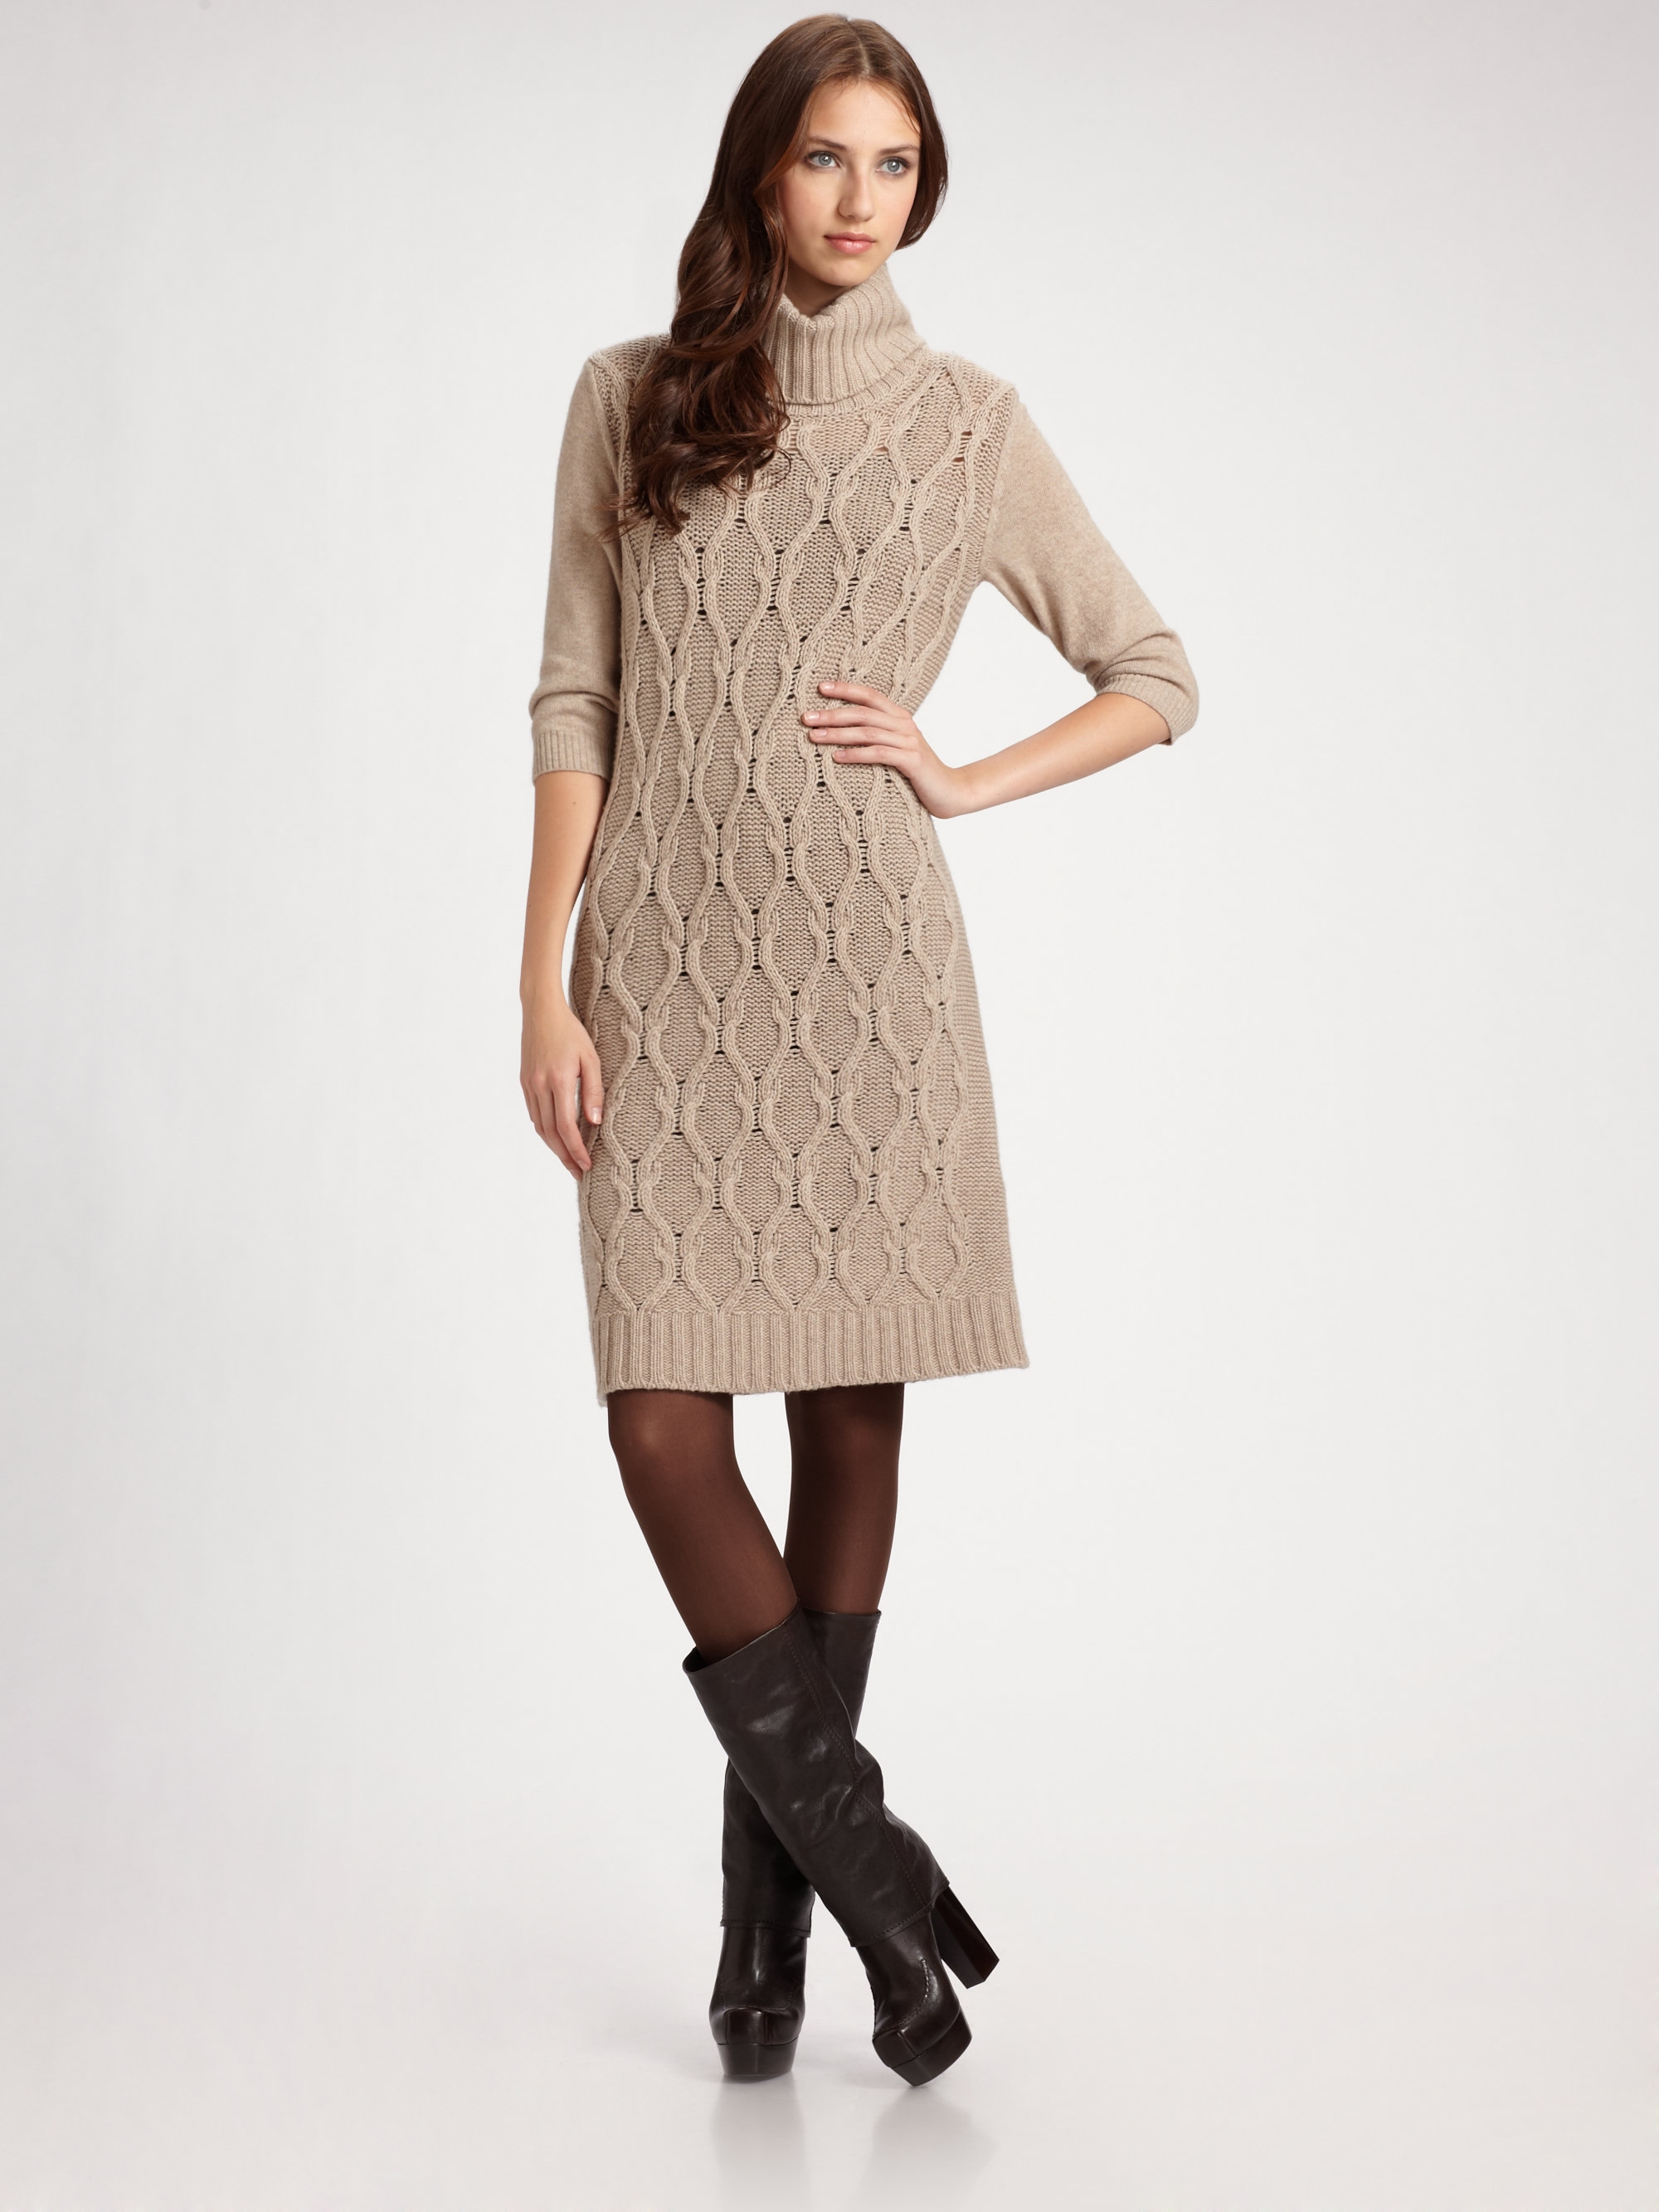 Get the best deals on h and m sweater dress and save up to 70% off at Poshmark now! Whatever you're shopping for, we've got it.